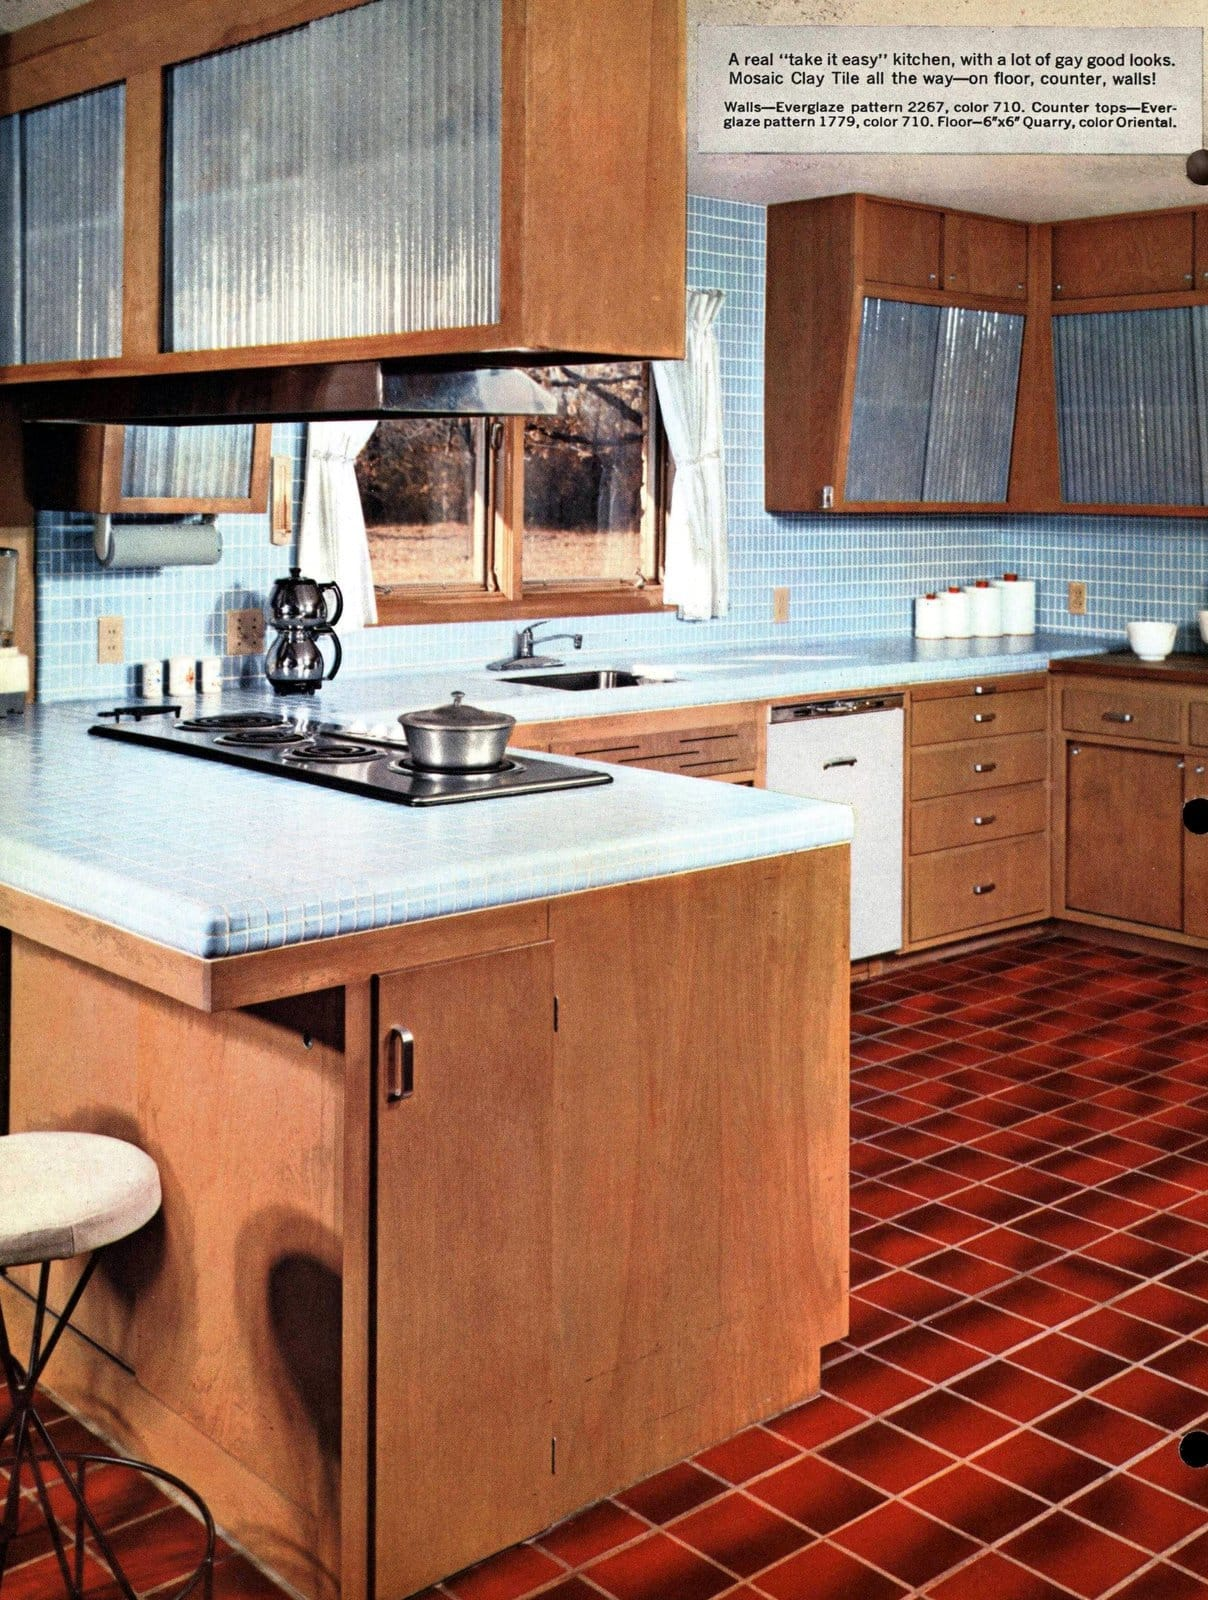 1950s mosaic tile floor, counter and walls